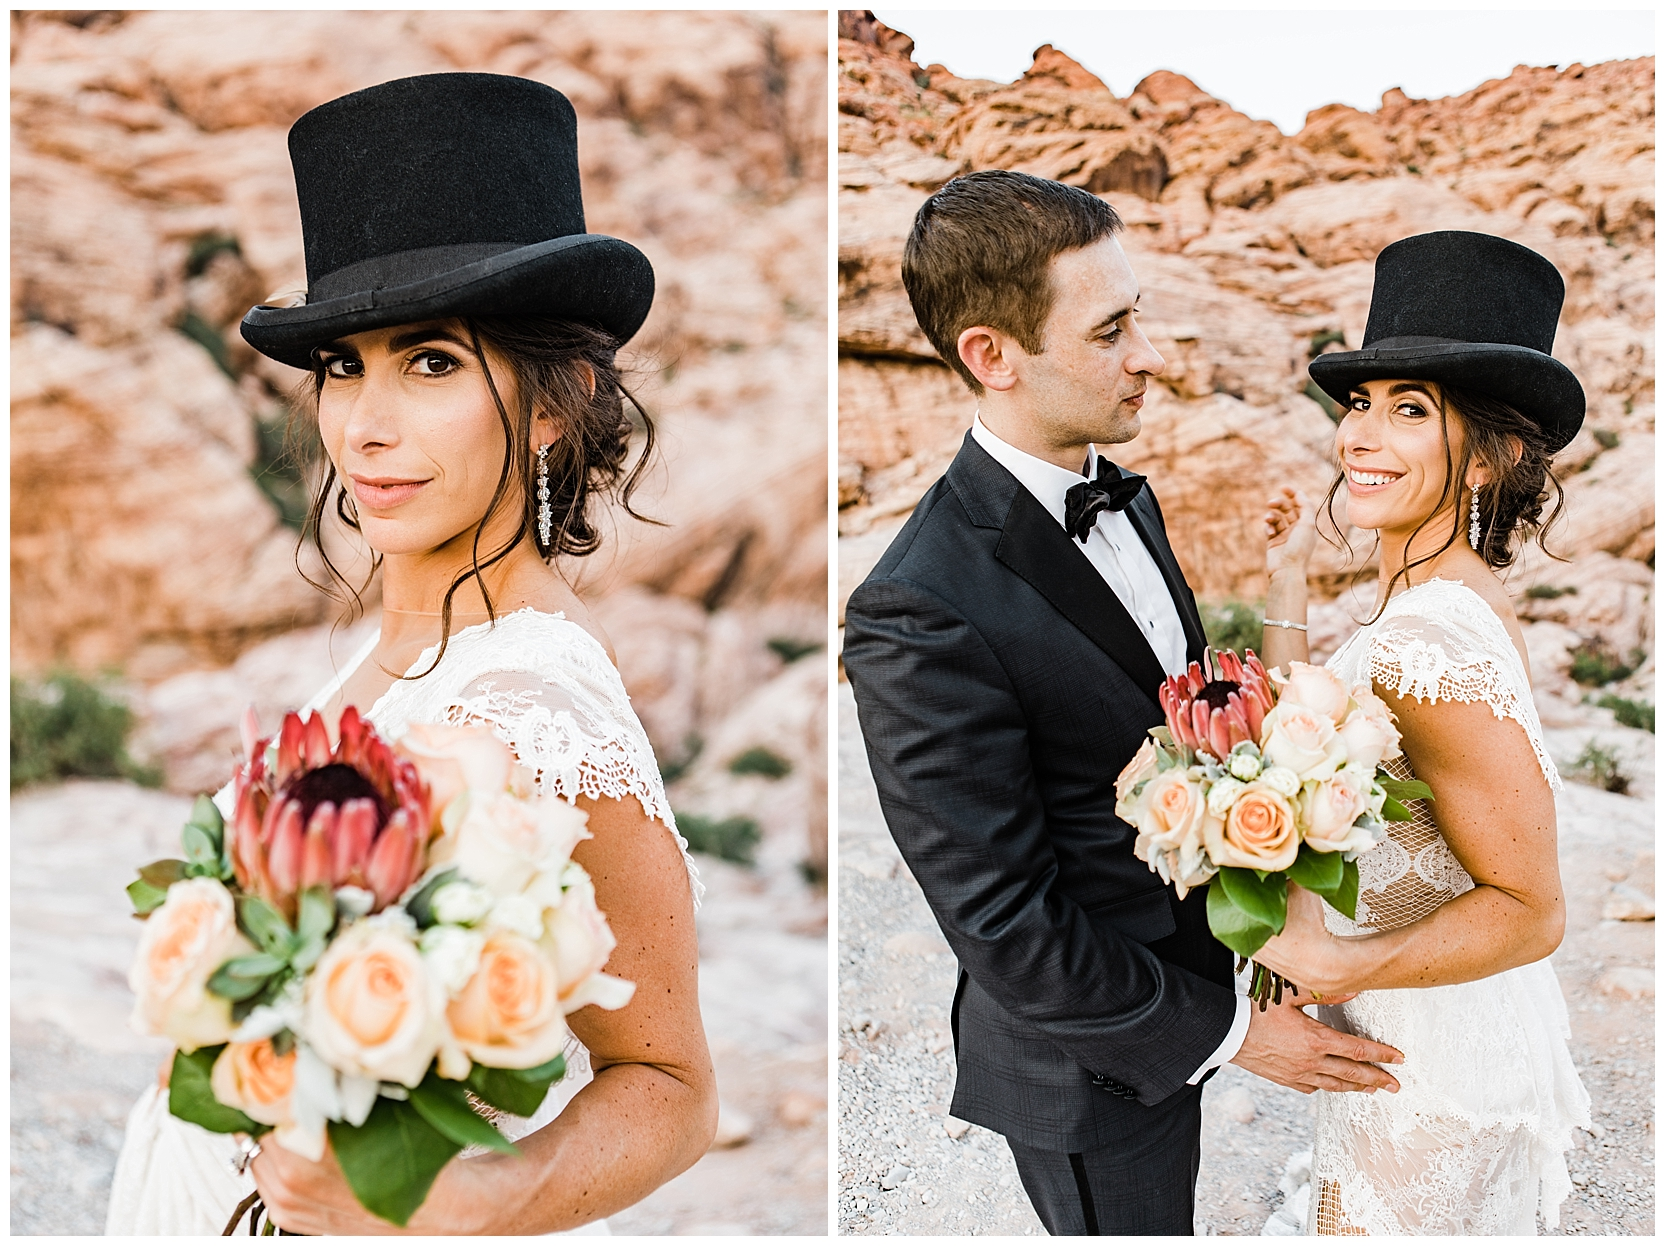 Las Vegas Elopement | Wedding Photos at Red Rock Canyon National Park| photo by Lindsey Ramdin, L.A.R. Weddings